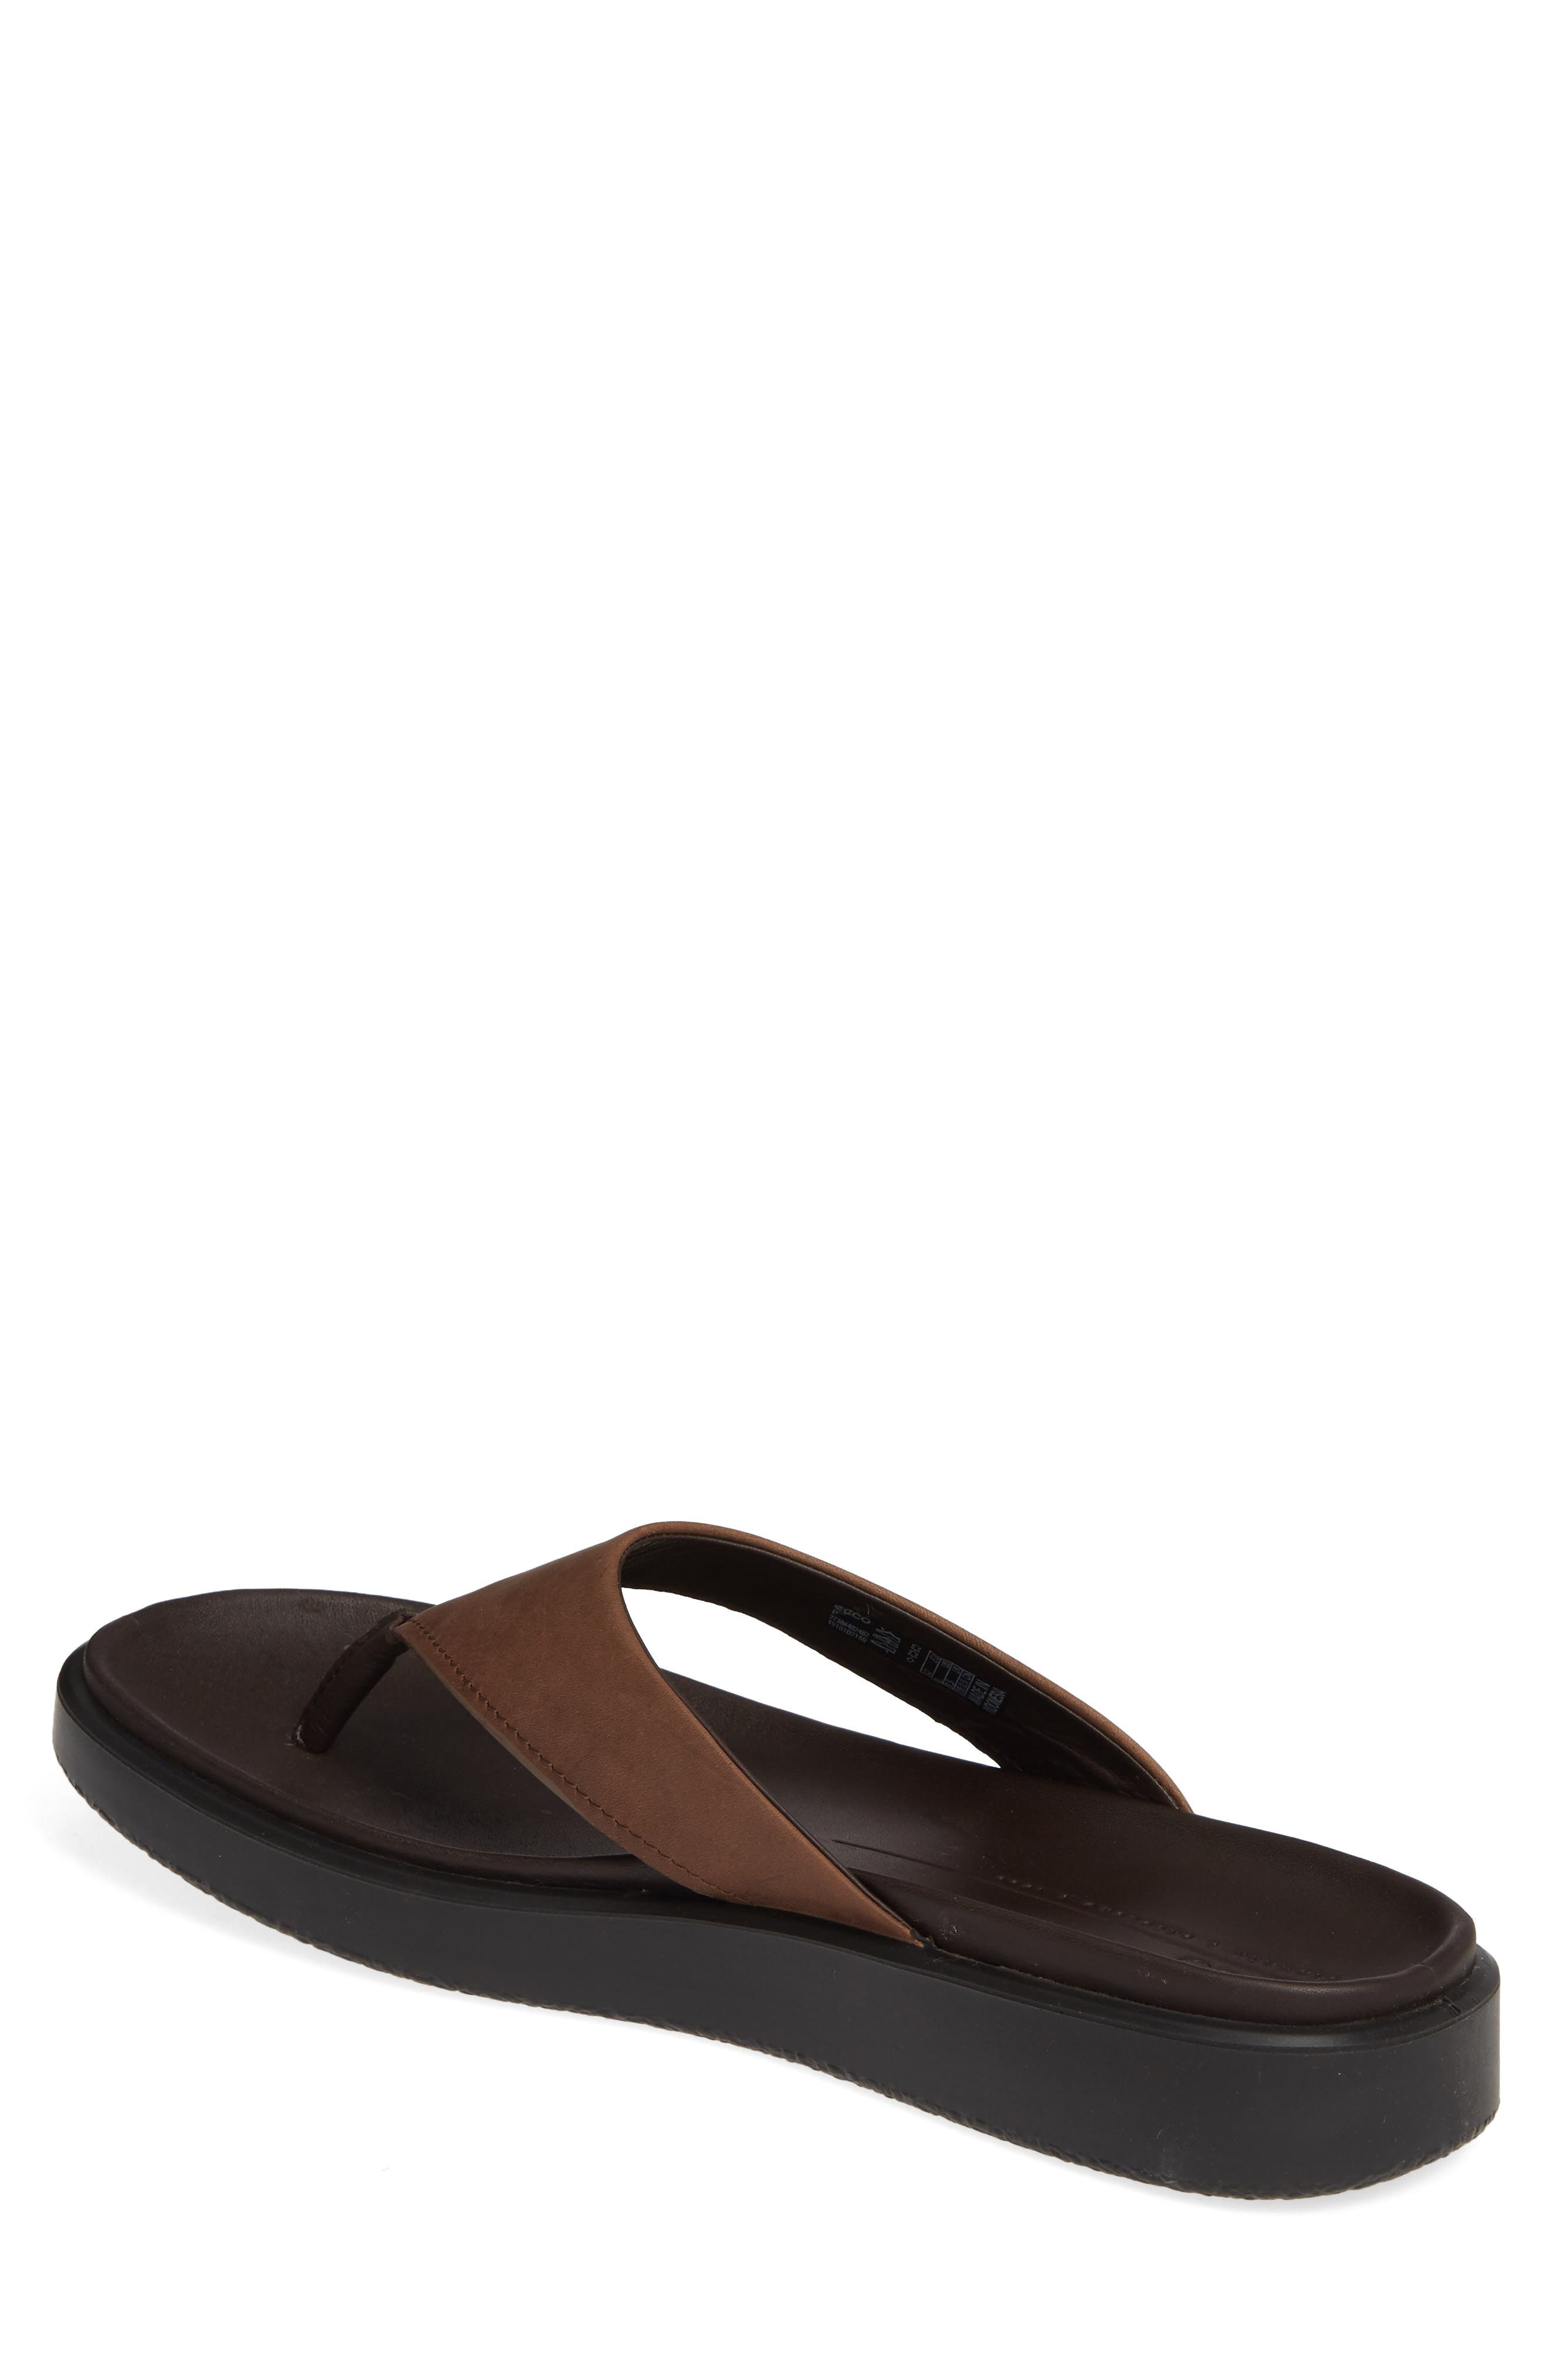 ECCO, Flowt LX Flip Flop, Alternate thumbnail 2, color, COCOA BROWN OILED NUBUCK